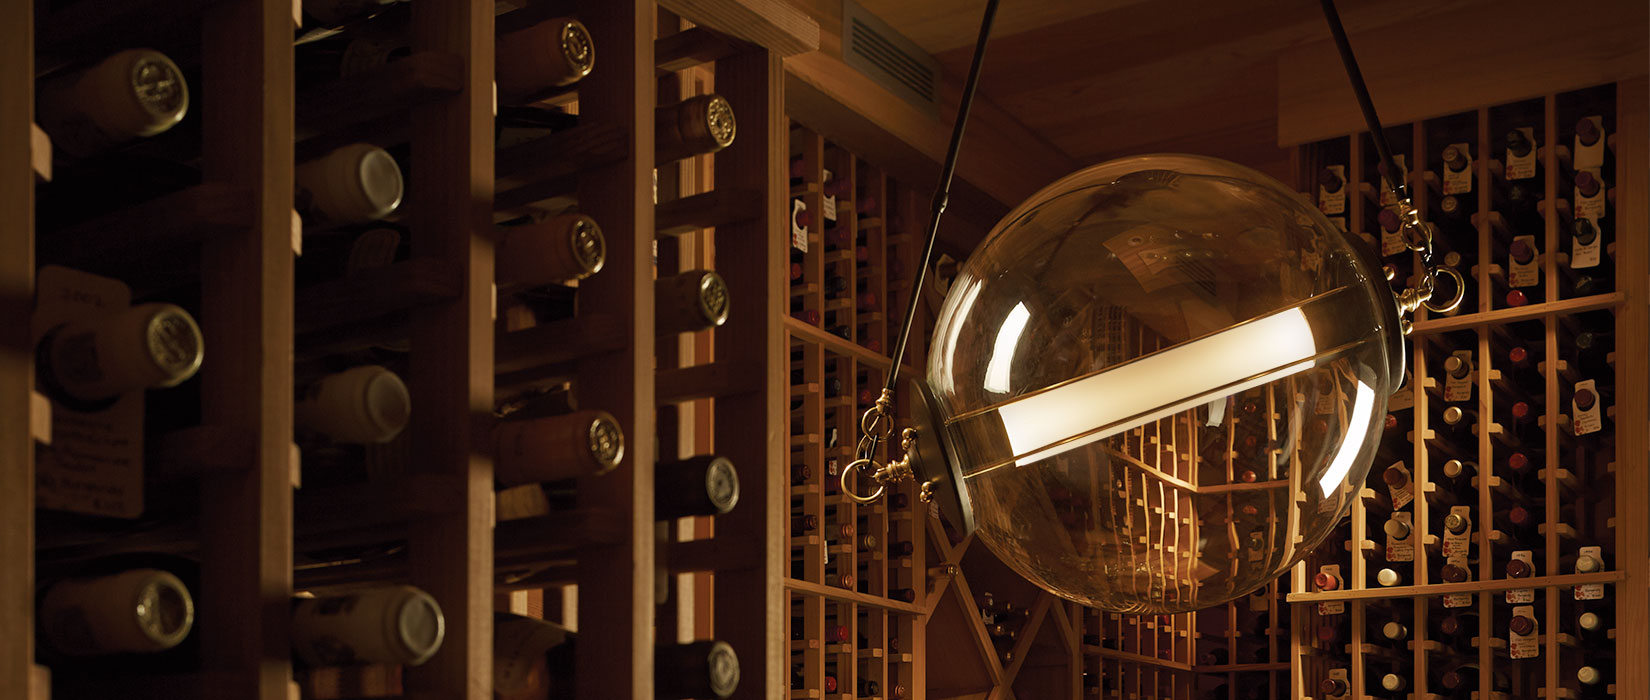 Otto Sphere Pendant hung in an industrial wine cellar setting